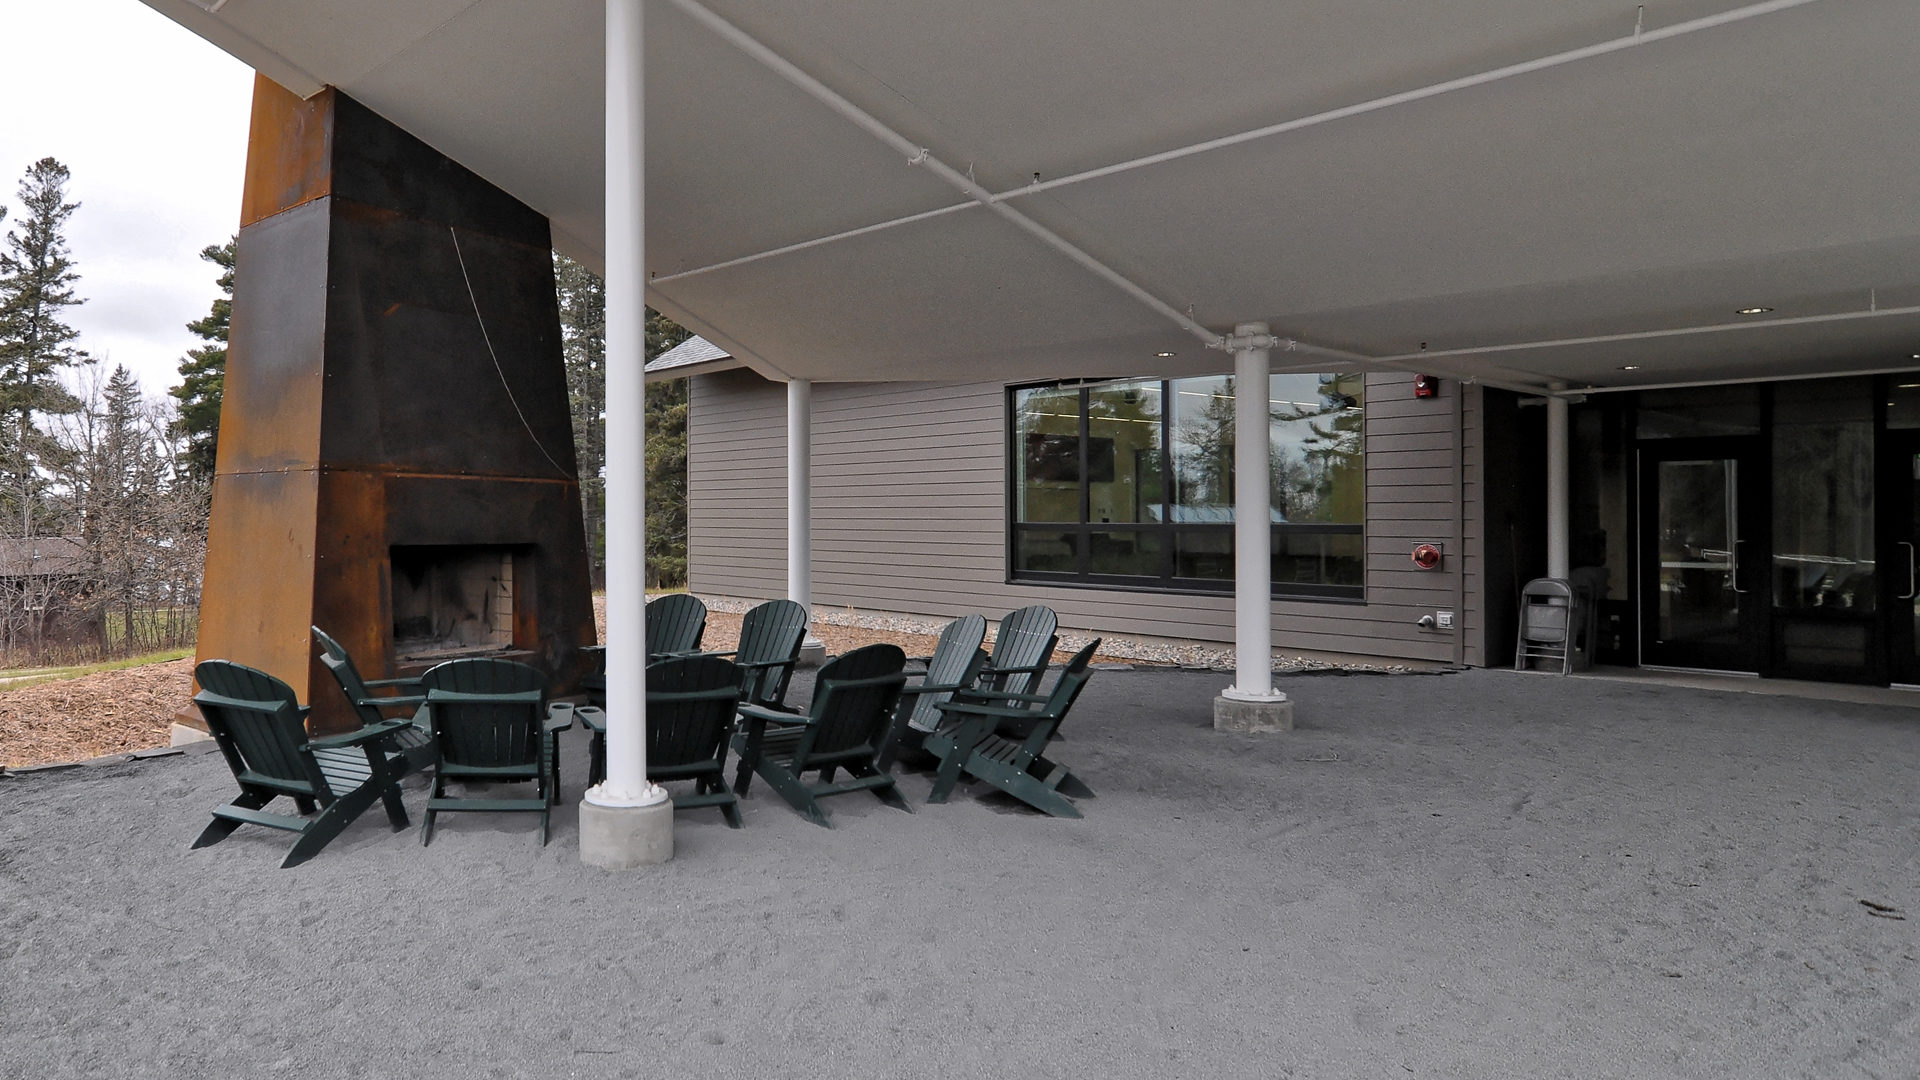 U of M Itasca Biological Station and Laboratories Outside Fireplace Seating Area Outside Entrance